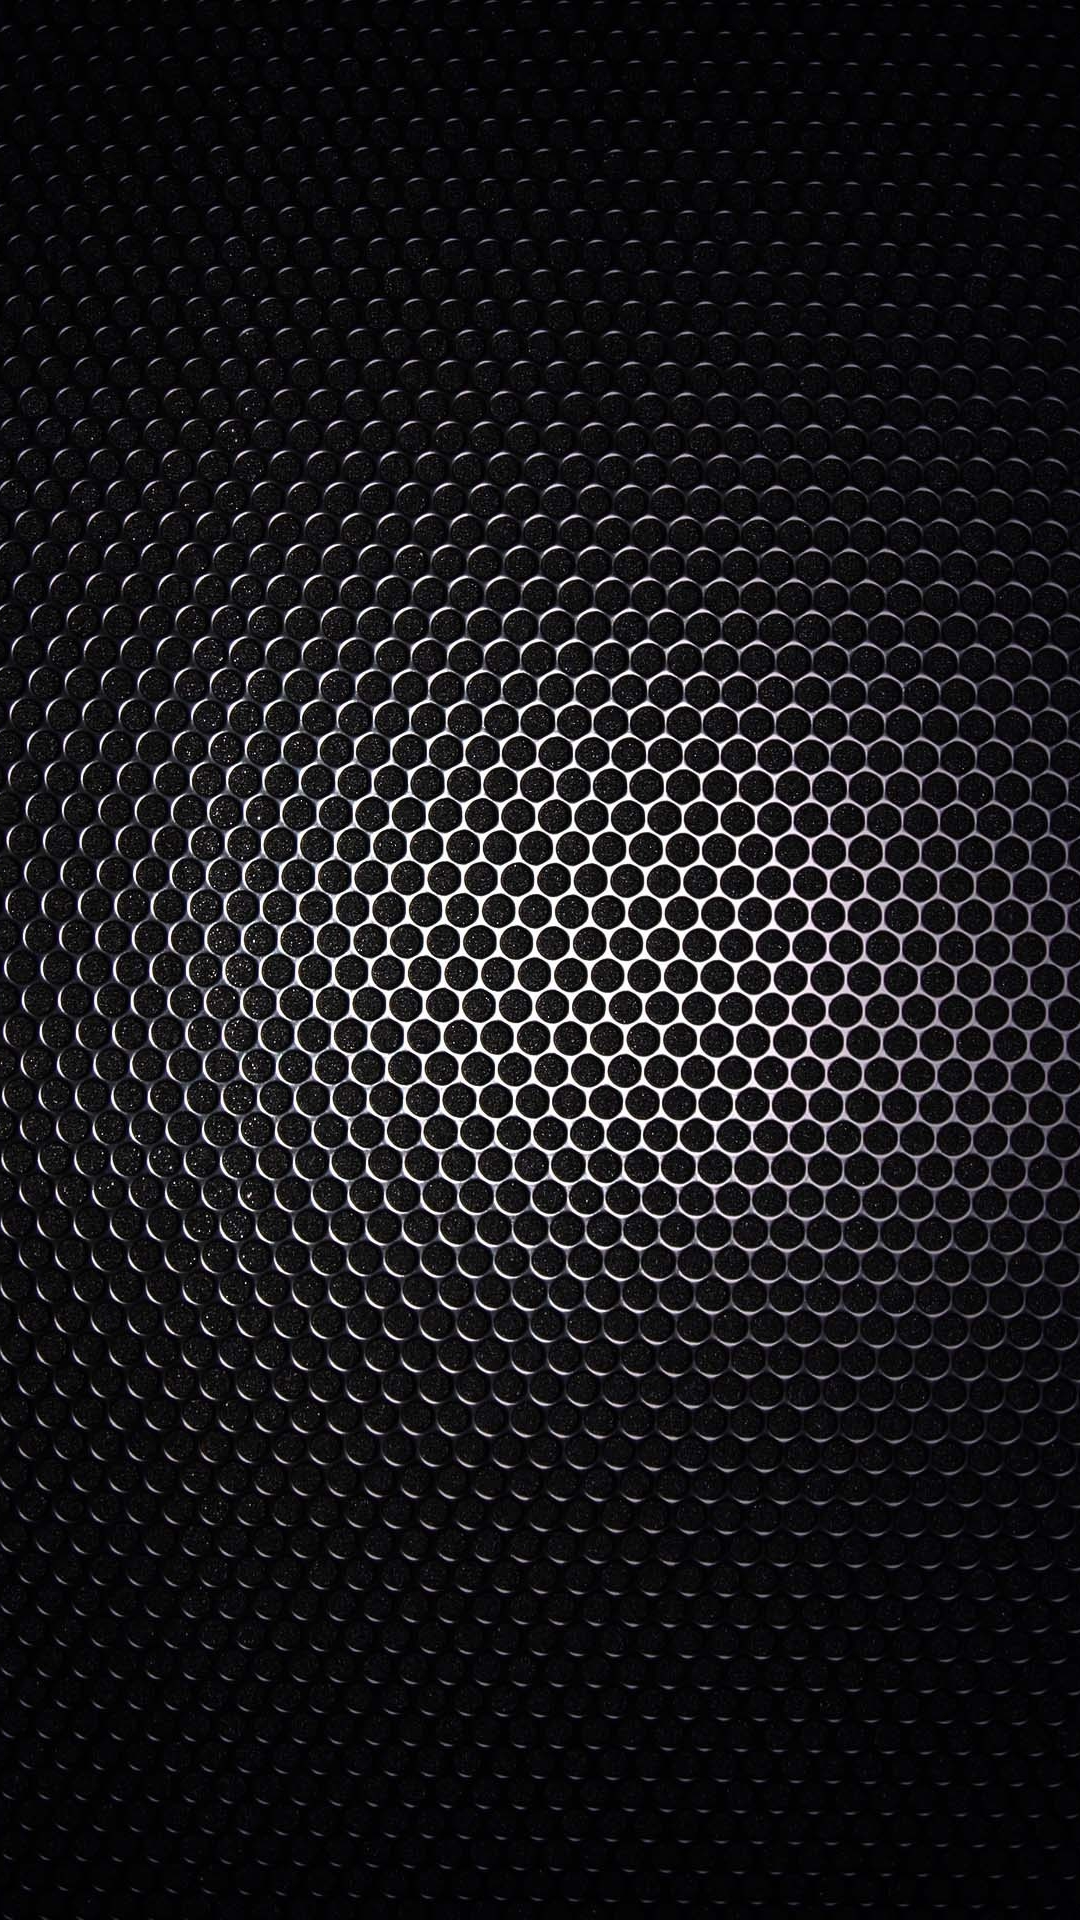 Wallpapers for Galaxy - Black Gradient Metal Grid